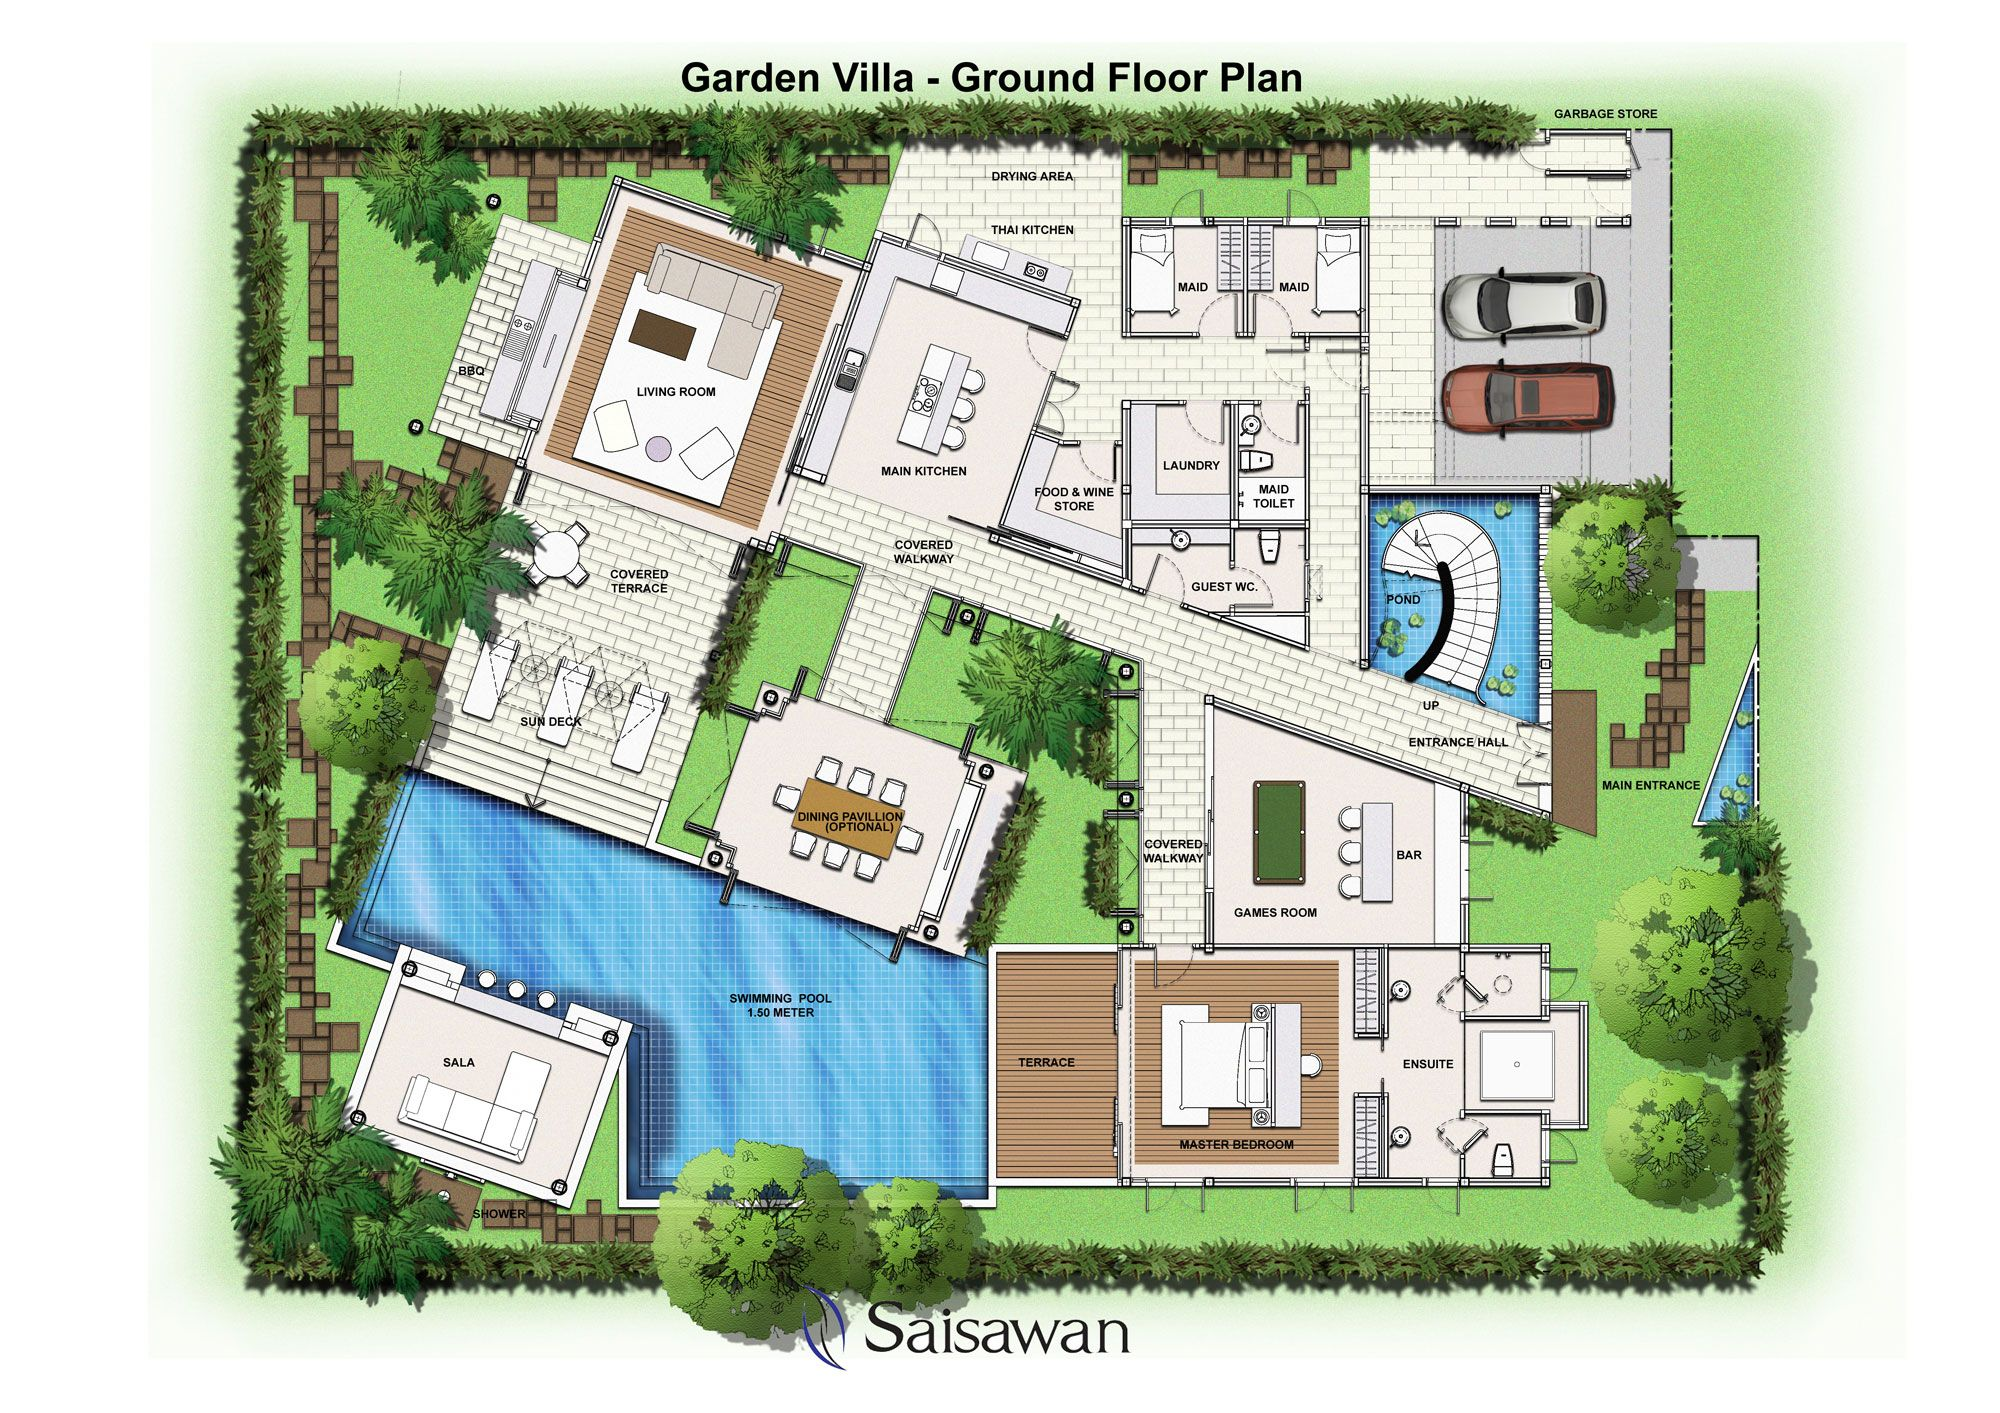 Saisawan garden villas ground floor plan house plans for Garden design of house